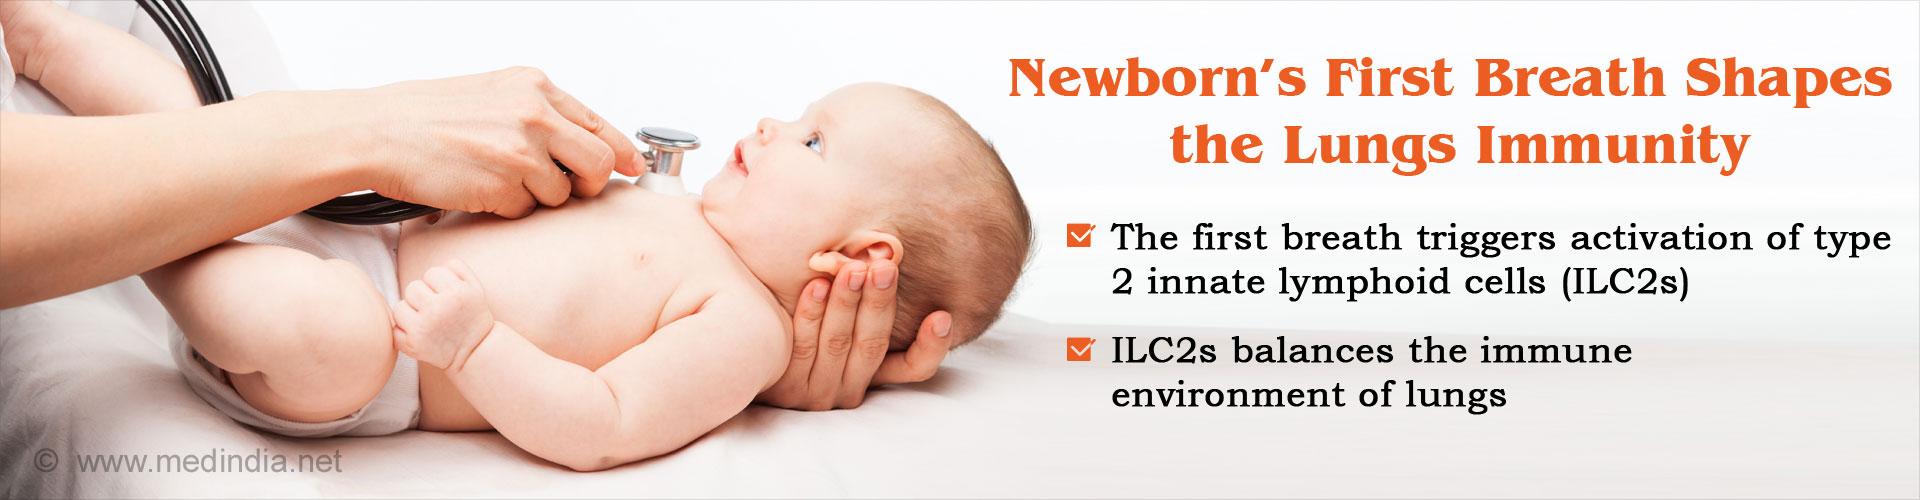 First Breath of Newborn Shapes the Lung's Immune System